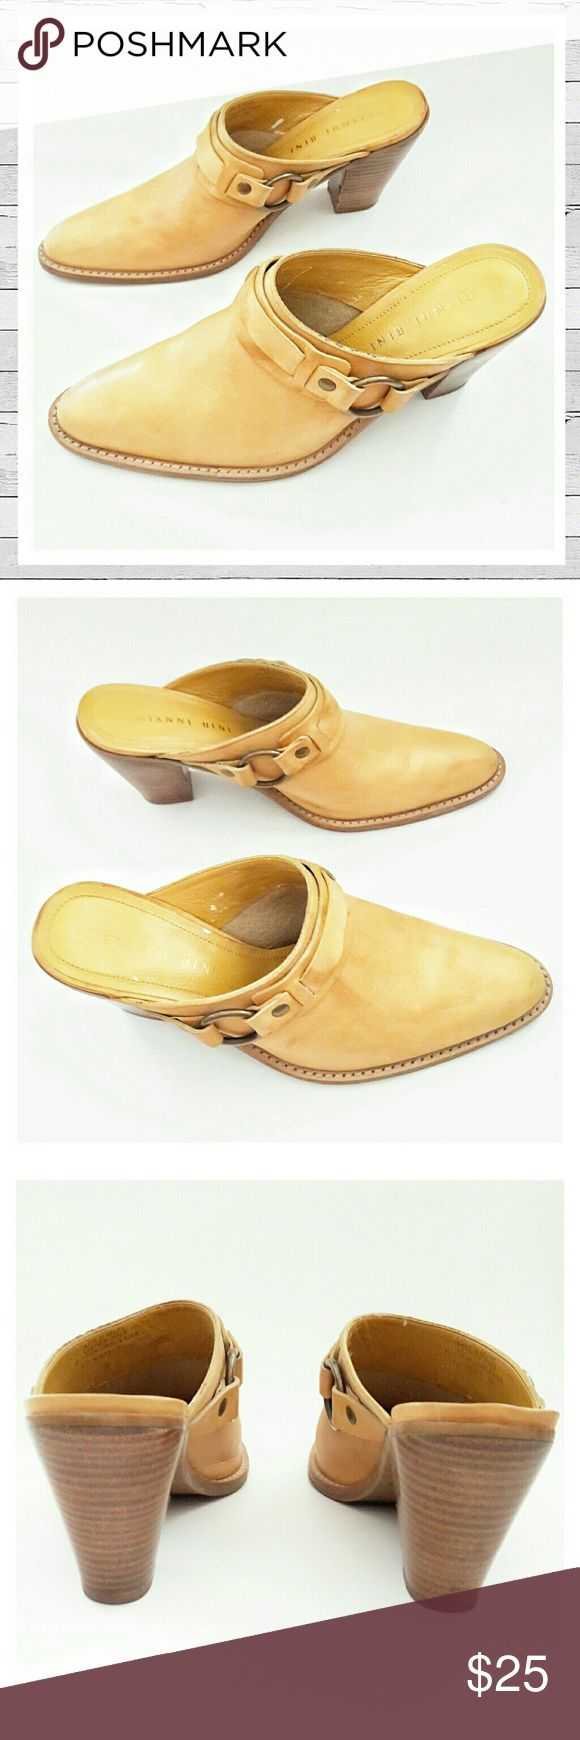 "Gianni Bini Western Style Leather Mule Clog Sz 9 Beautiful brushed butterscotch leather with inside and outside buckle detail and 3"" heel. Some light wear as visible in photos. Still in very good condition. Bundle and save! Sorry no trades. Gianni Bini Shoes Mules & Clogs"